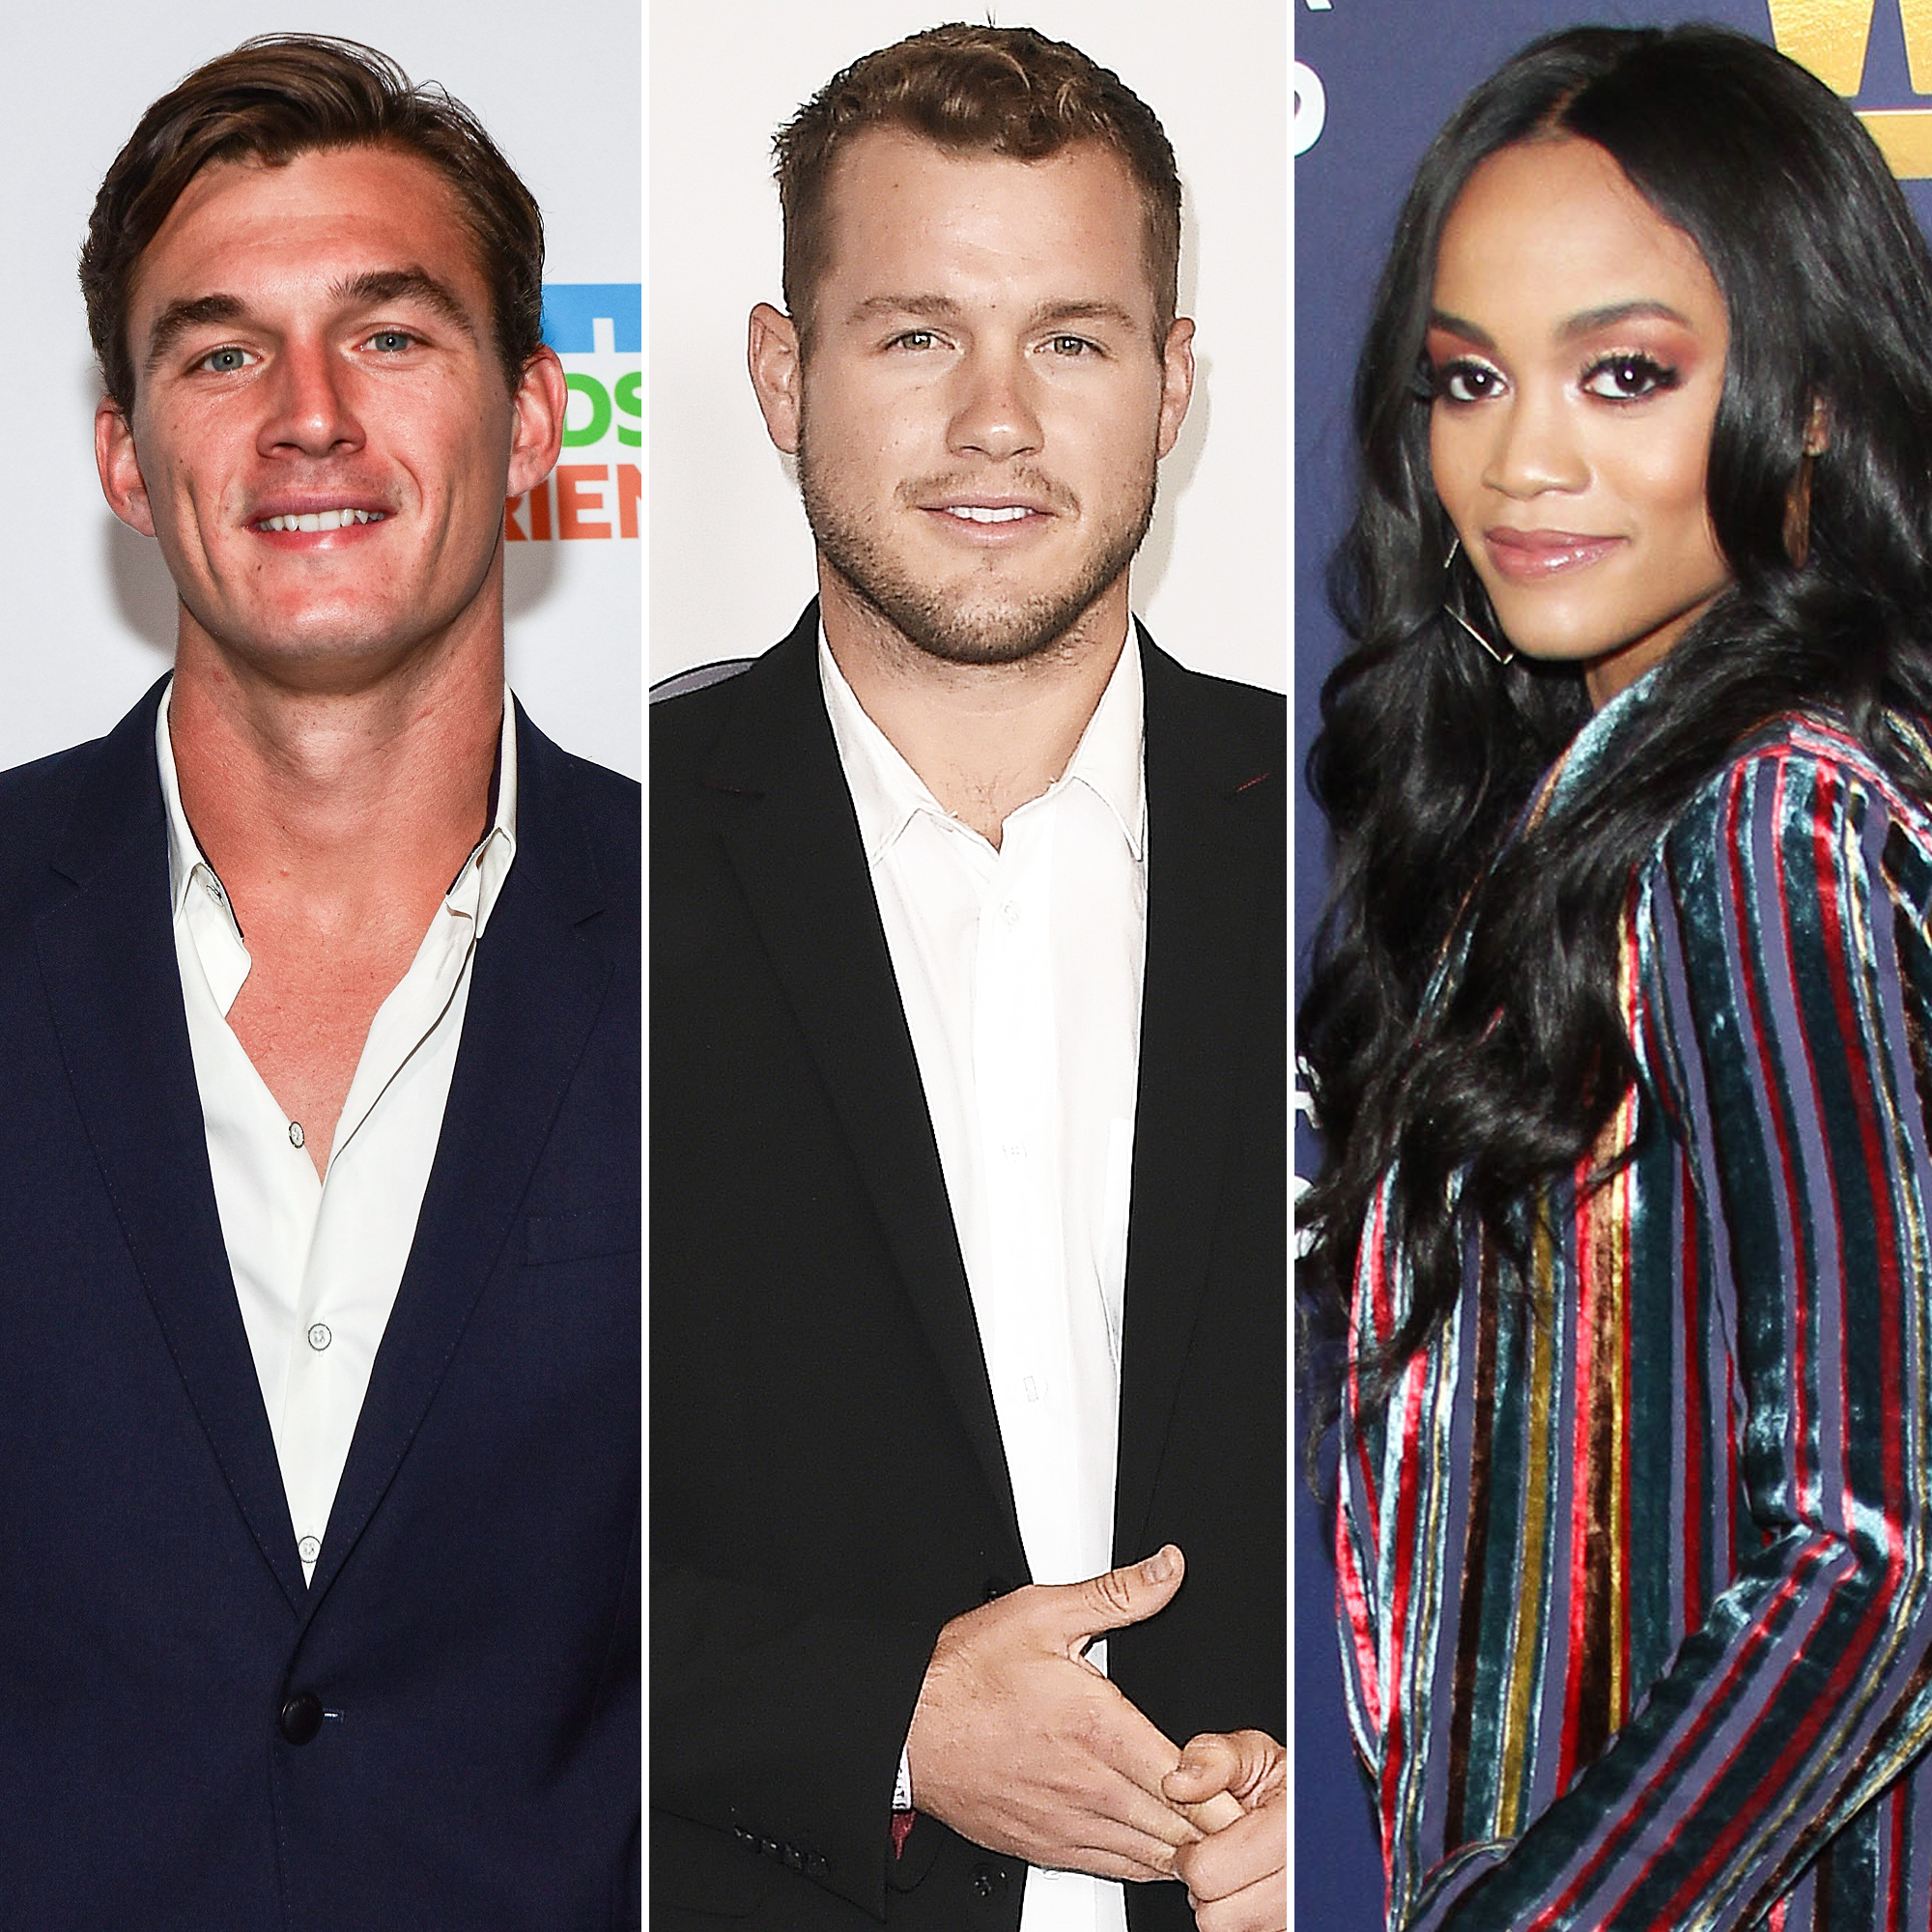 'Bachelorette' Star Tyler Cameron 'Would Judge the Feud' Between Colton Underwood and Rachel Lindsay